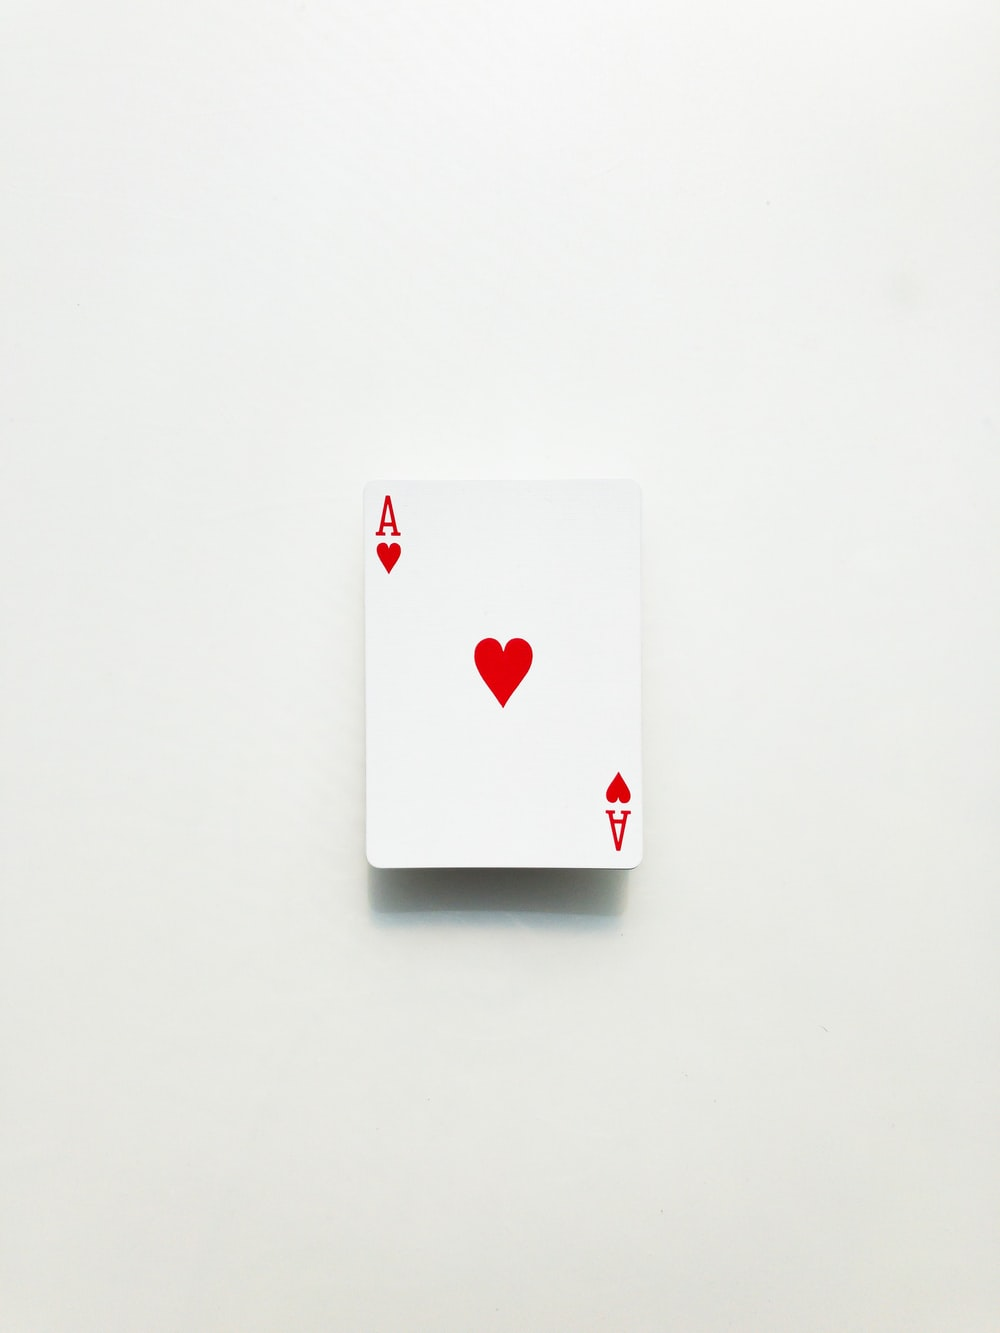 2 of diamonds playing card